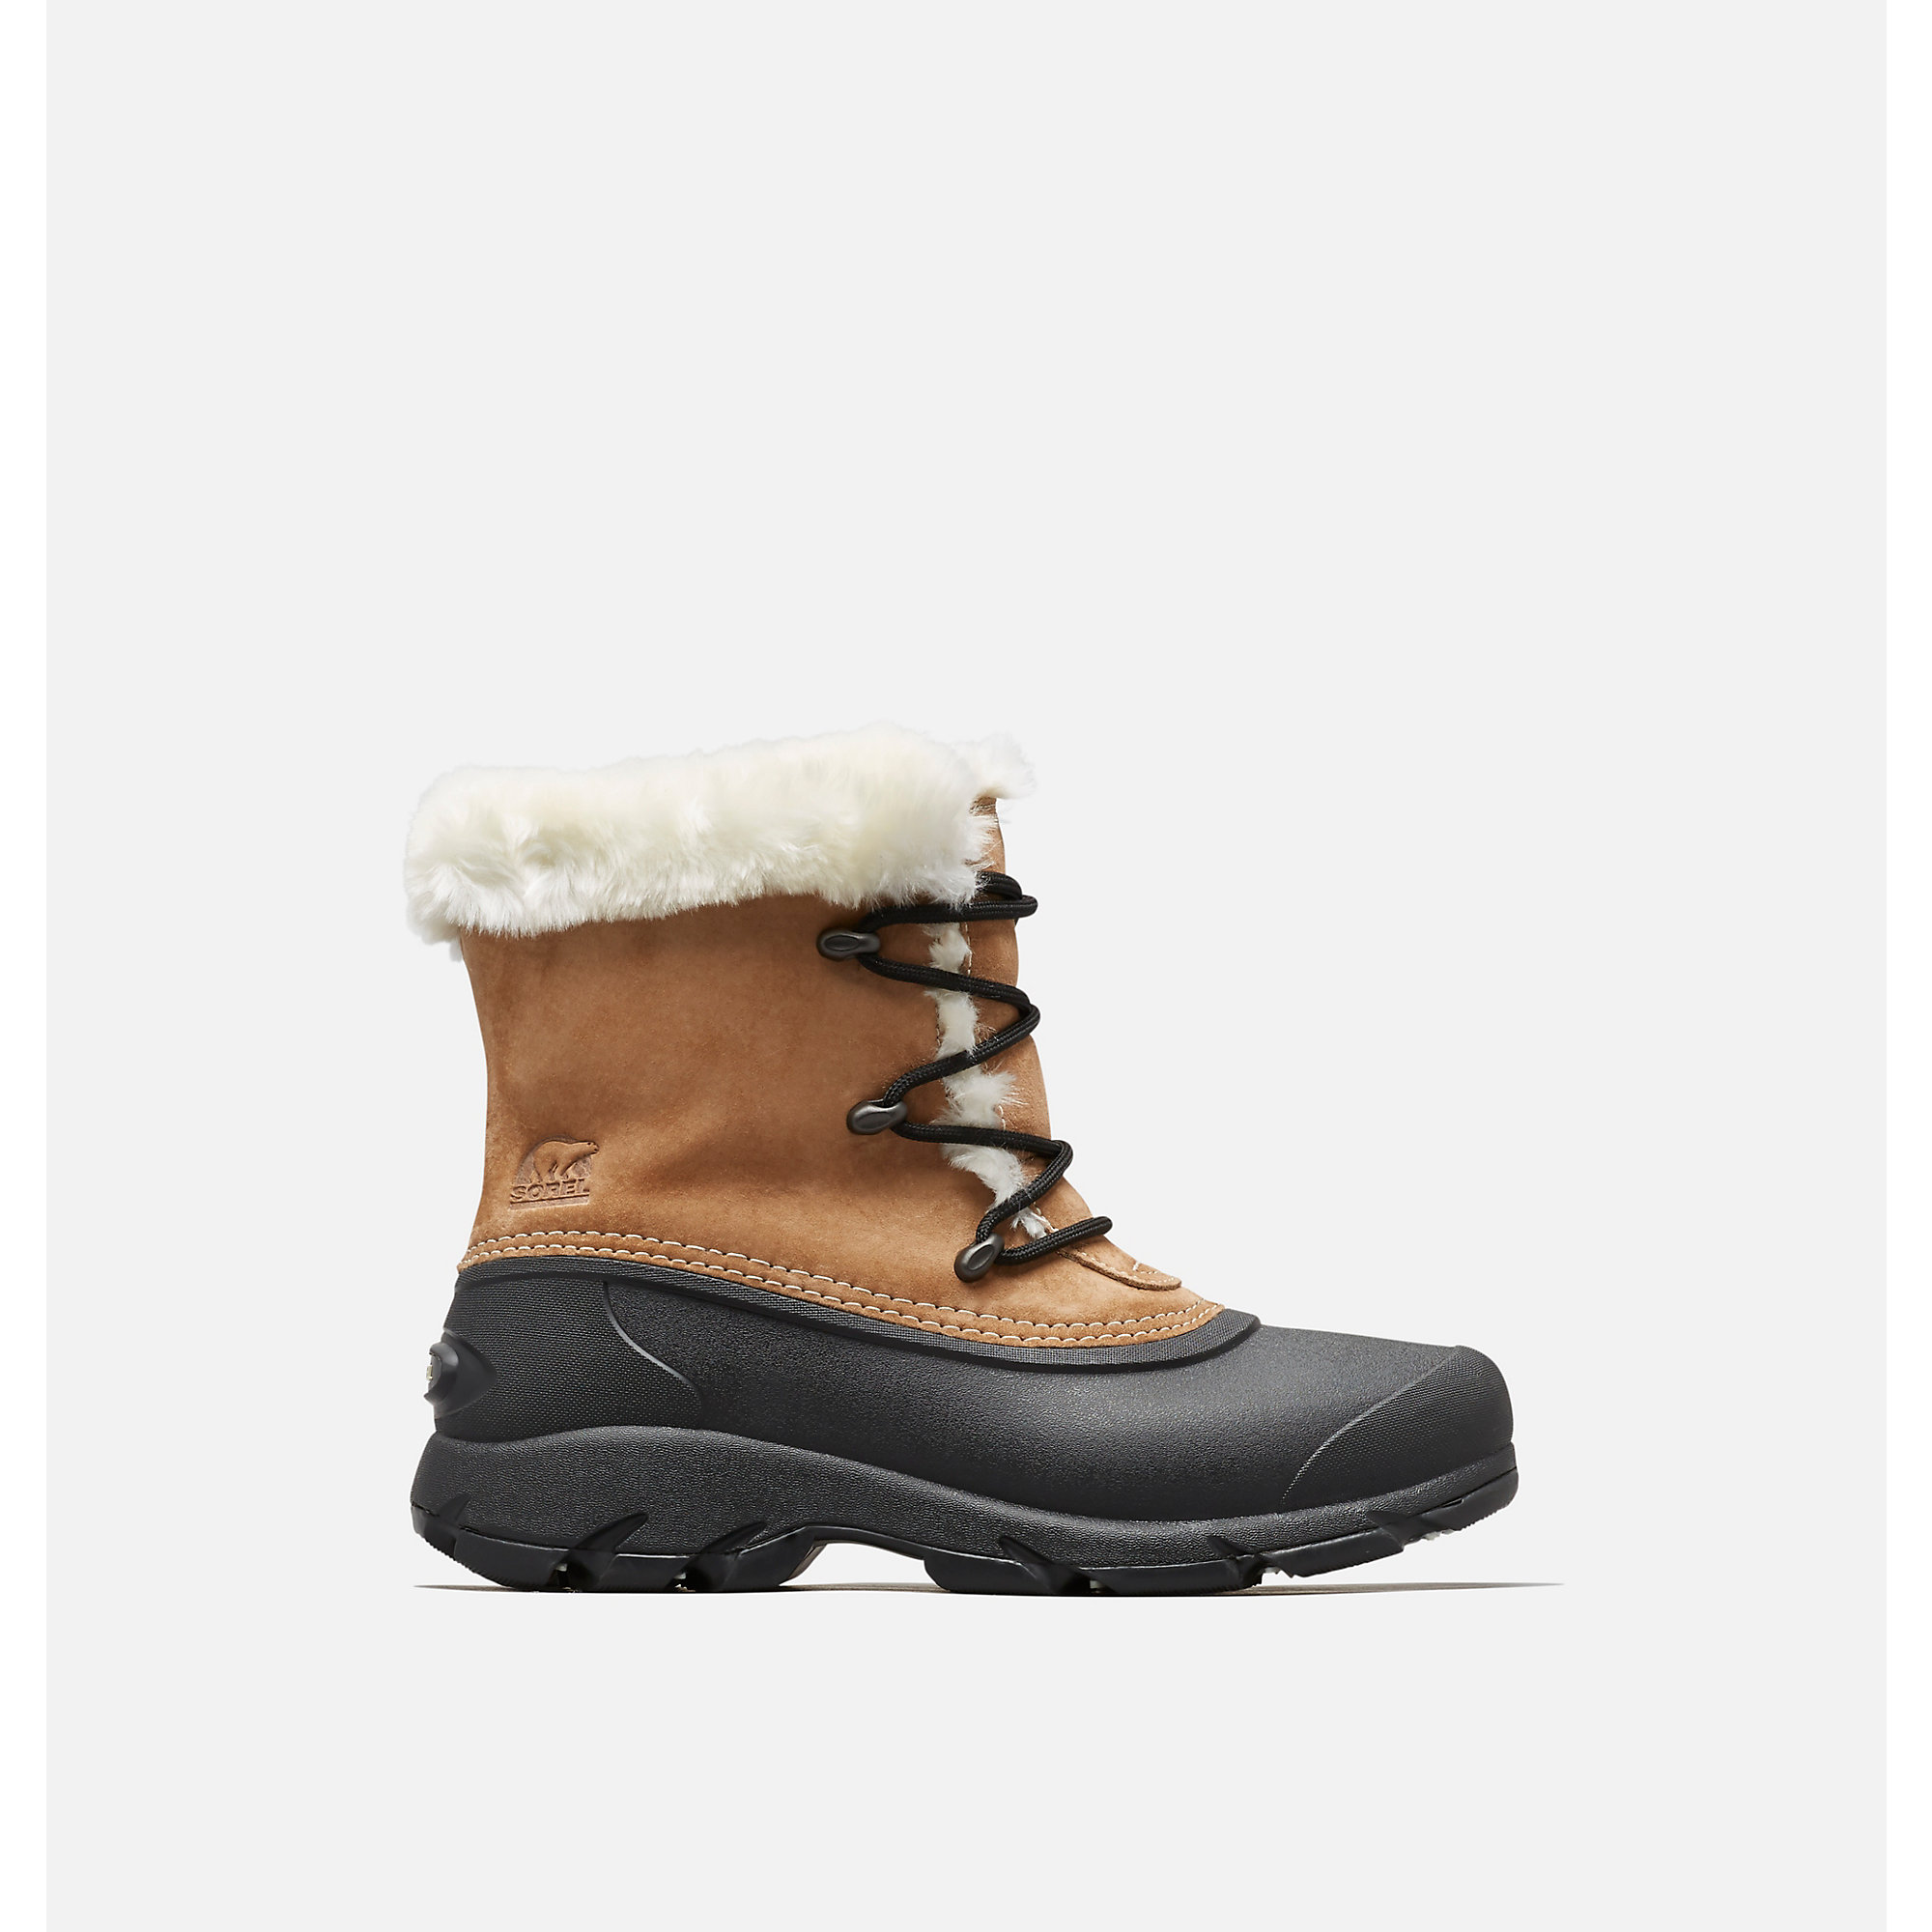 Sorel SNOW ANGEL LACE BOOTS